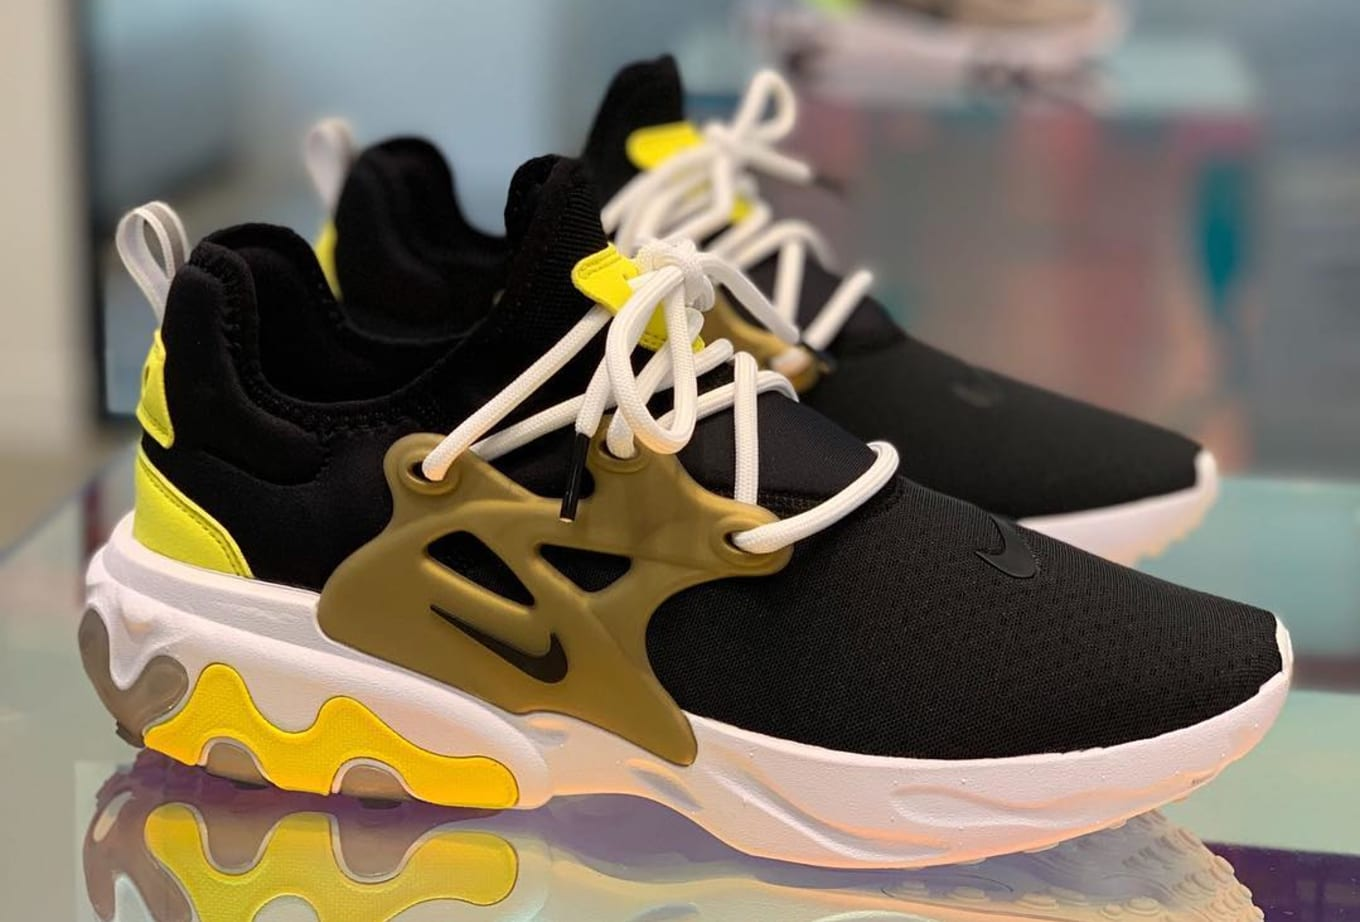 detailed look 17eb7 02e19 Two More Colorways of the Nike Presto React to Look Forward to